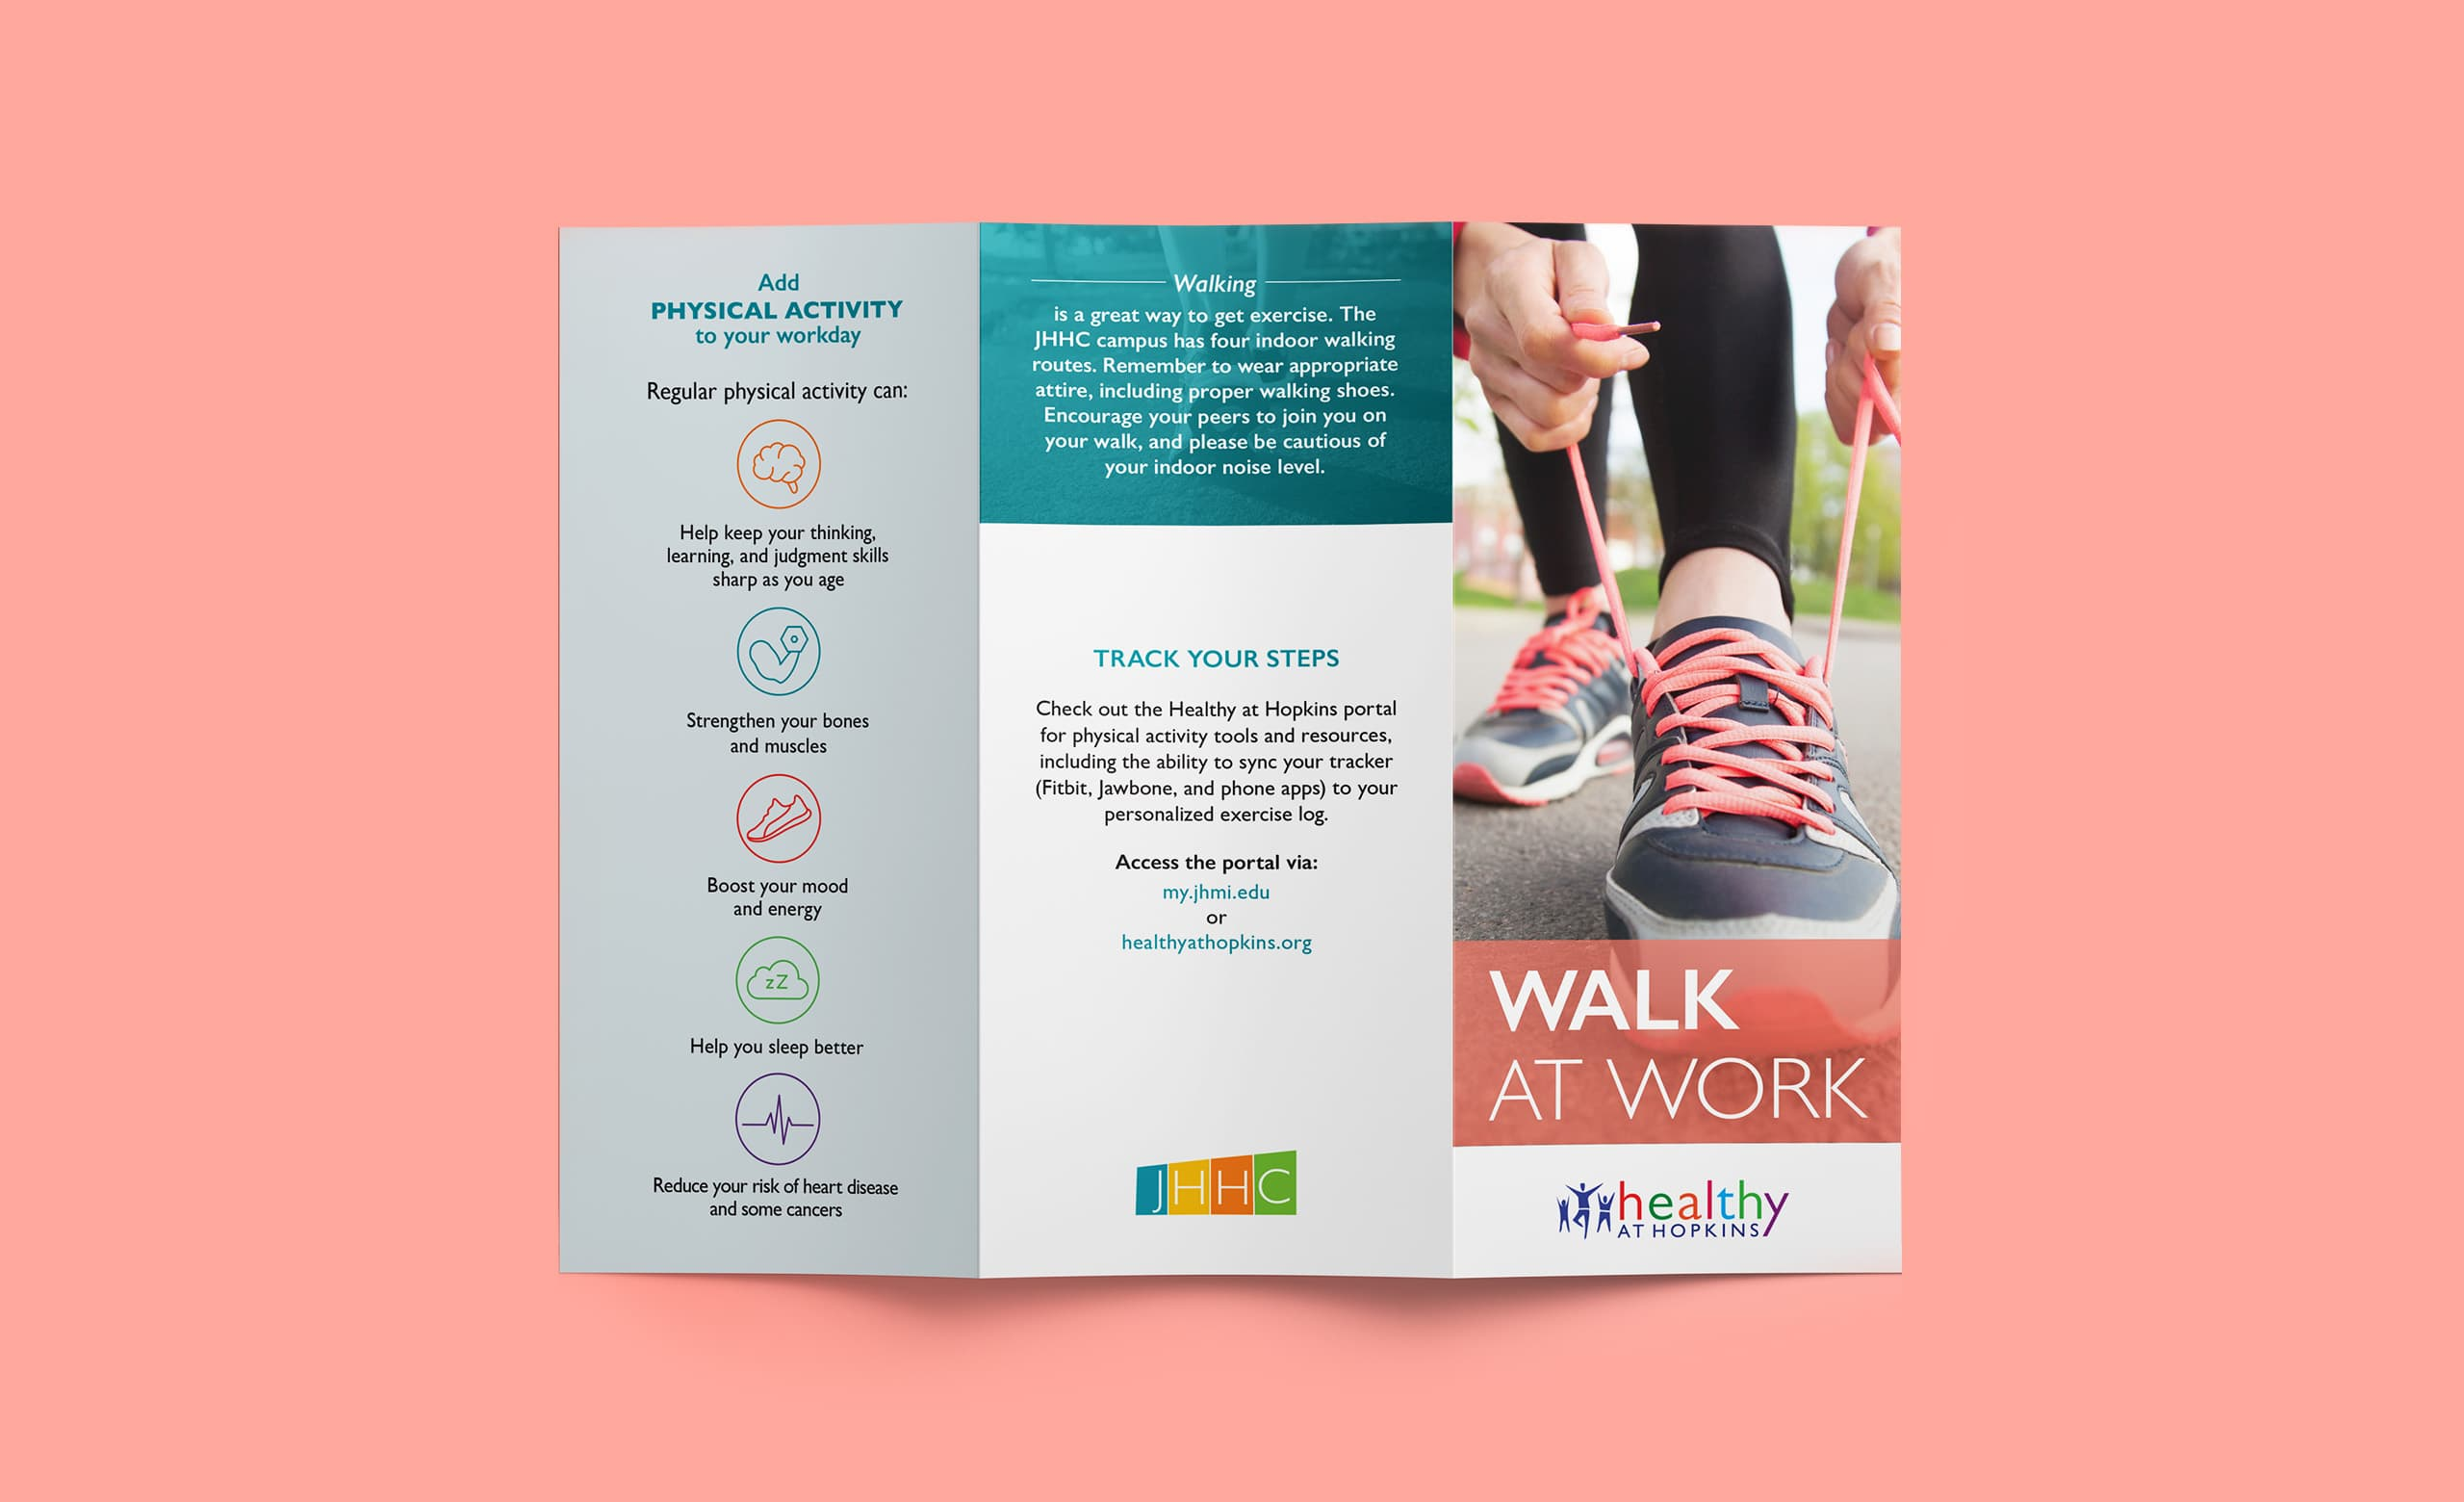 The front of a brochure for Johns Hopkins Healthcare, promoting healthy habits in the workplace.